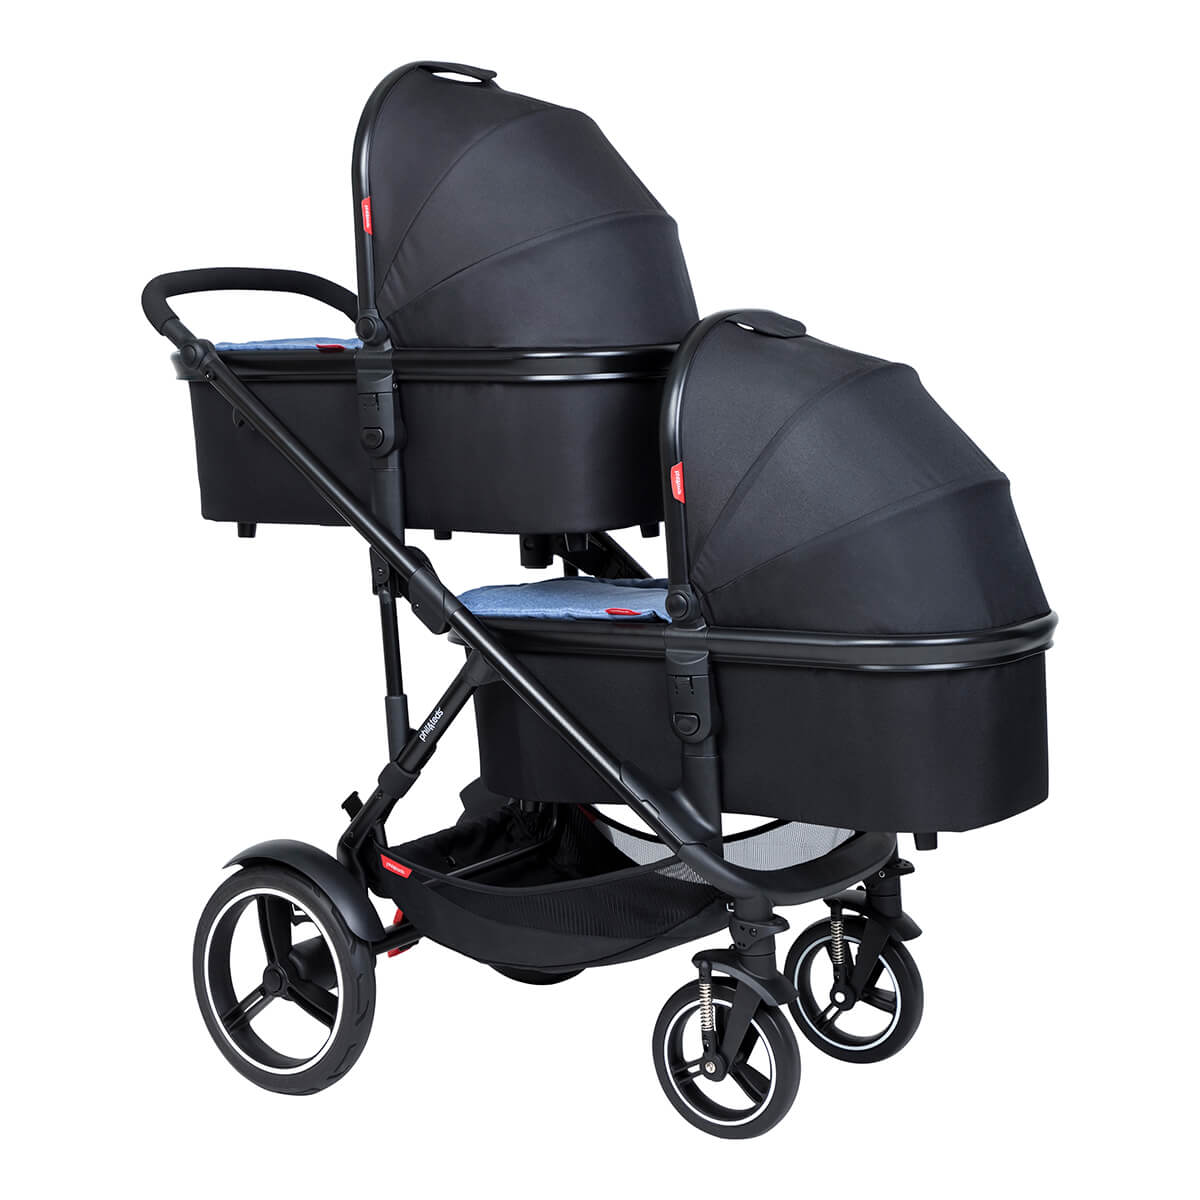 https://cdn.accentuate.io/4509867573345/19793940447402/philteds-voyager-inline-buggy-with-double-snug-carrycots-v1626485380363.jpg?1200x1200